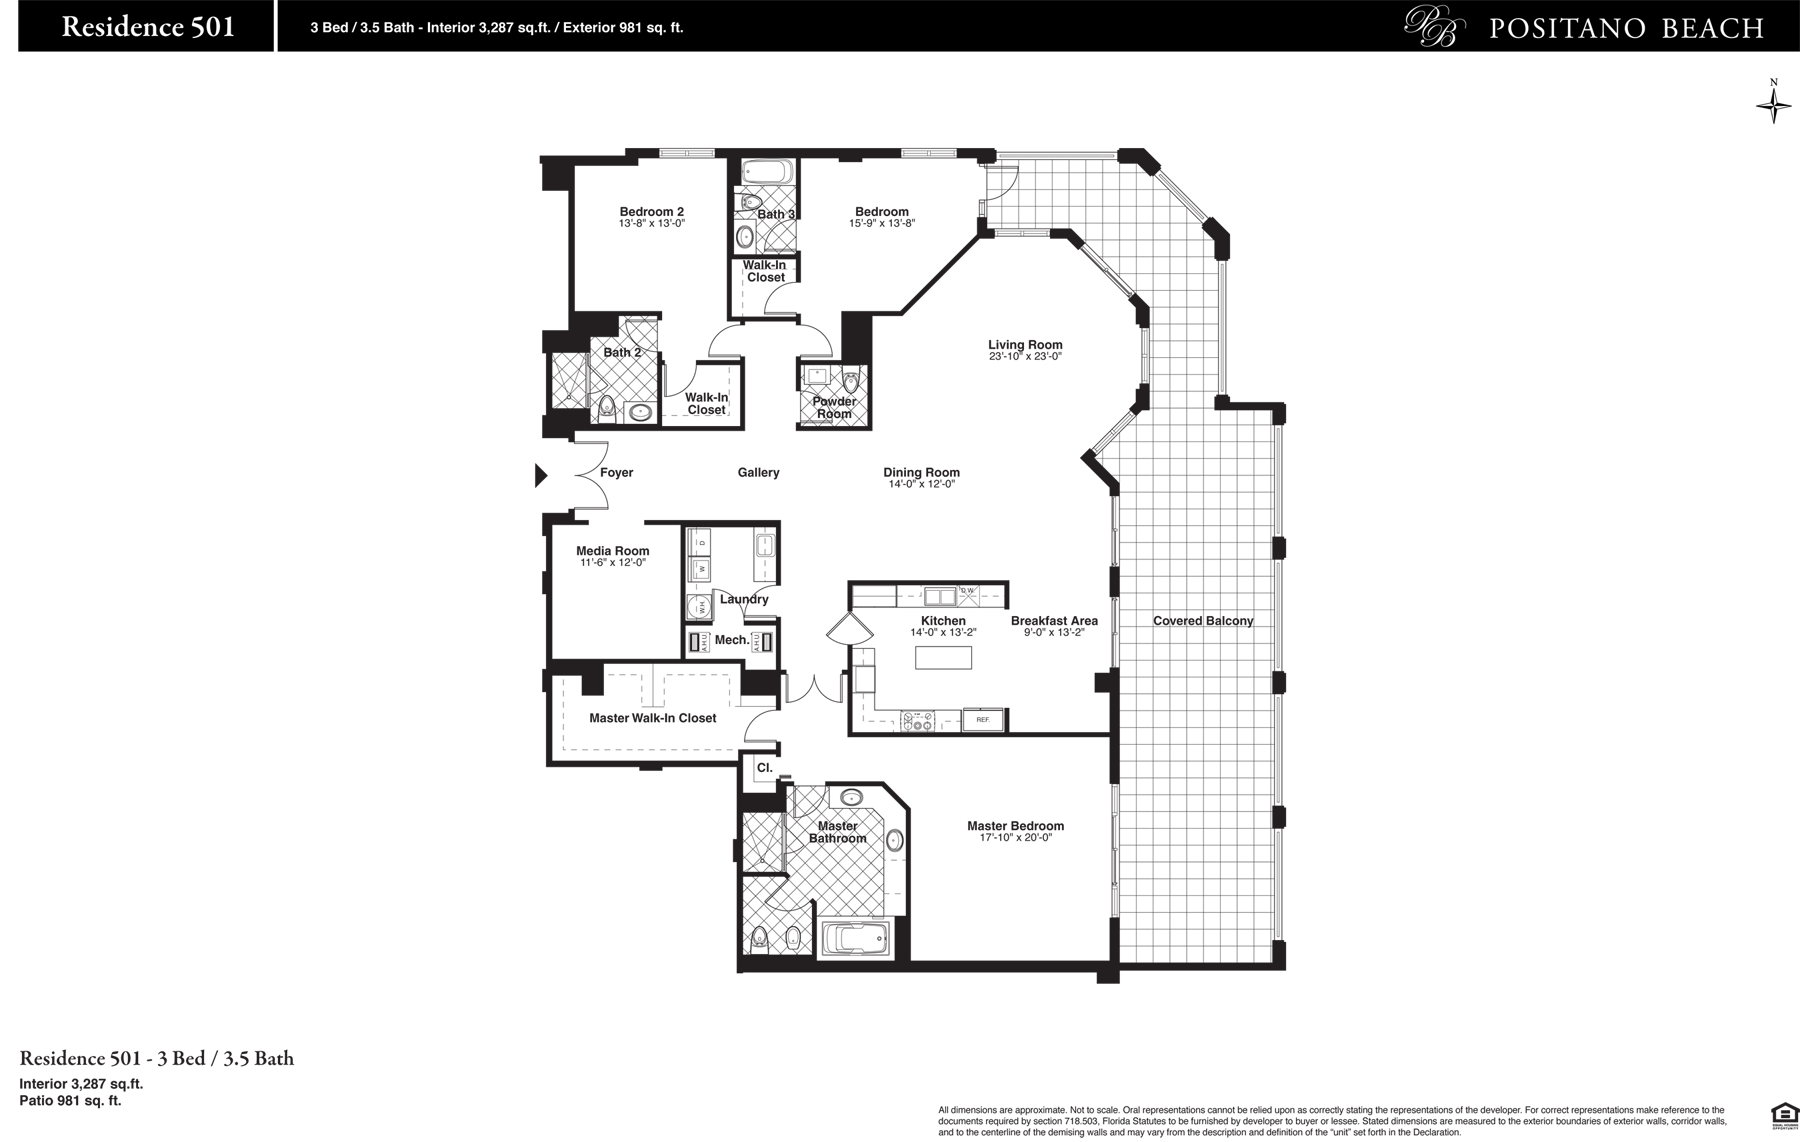 Positano Beach - Floorplan 6